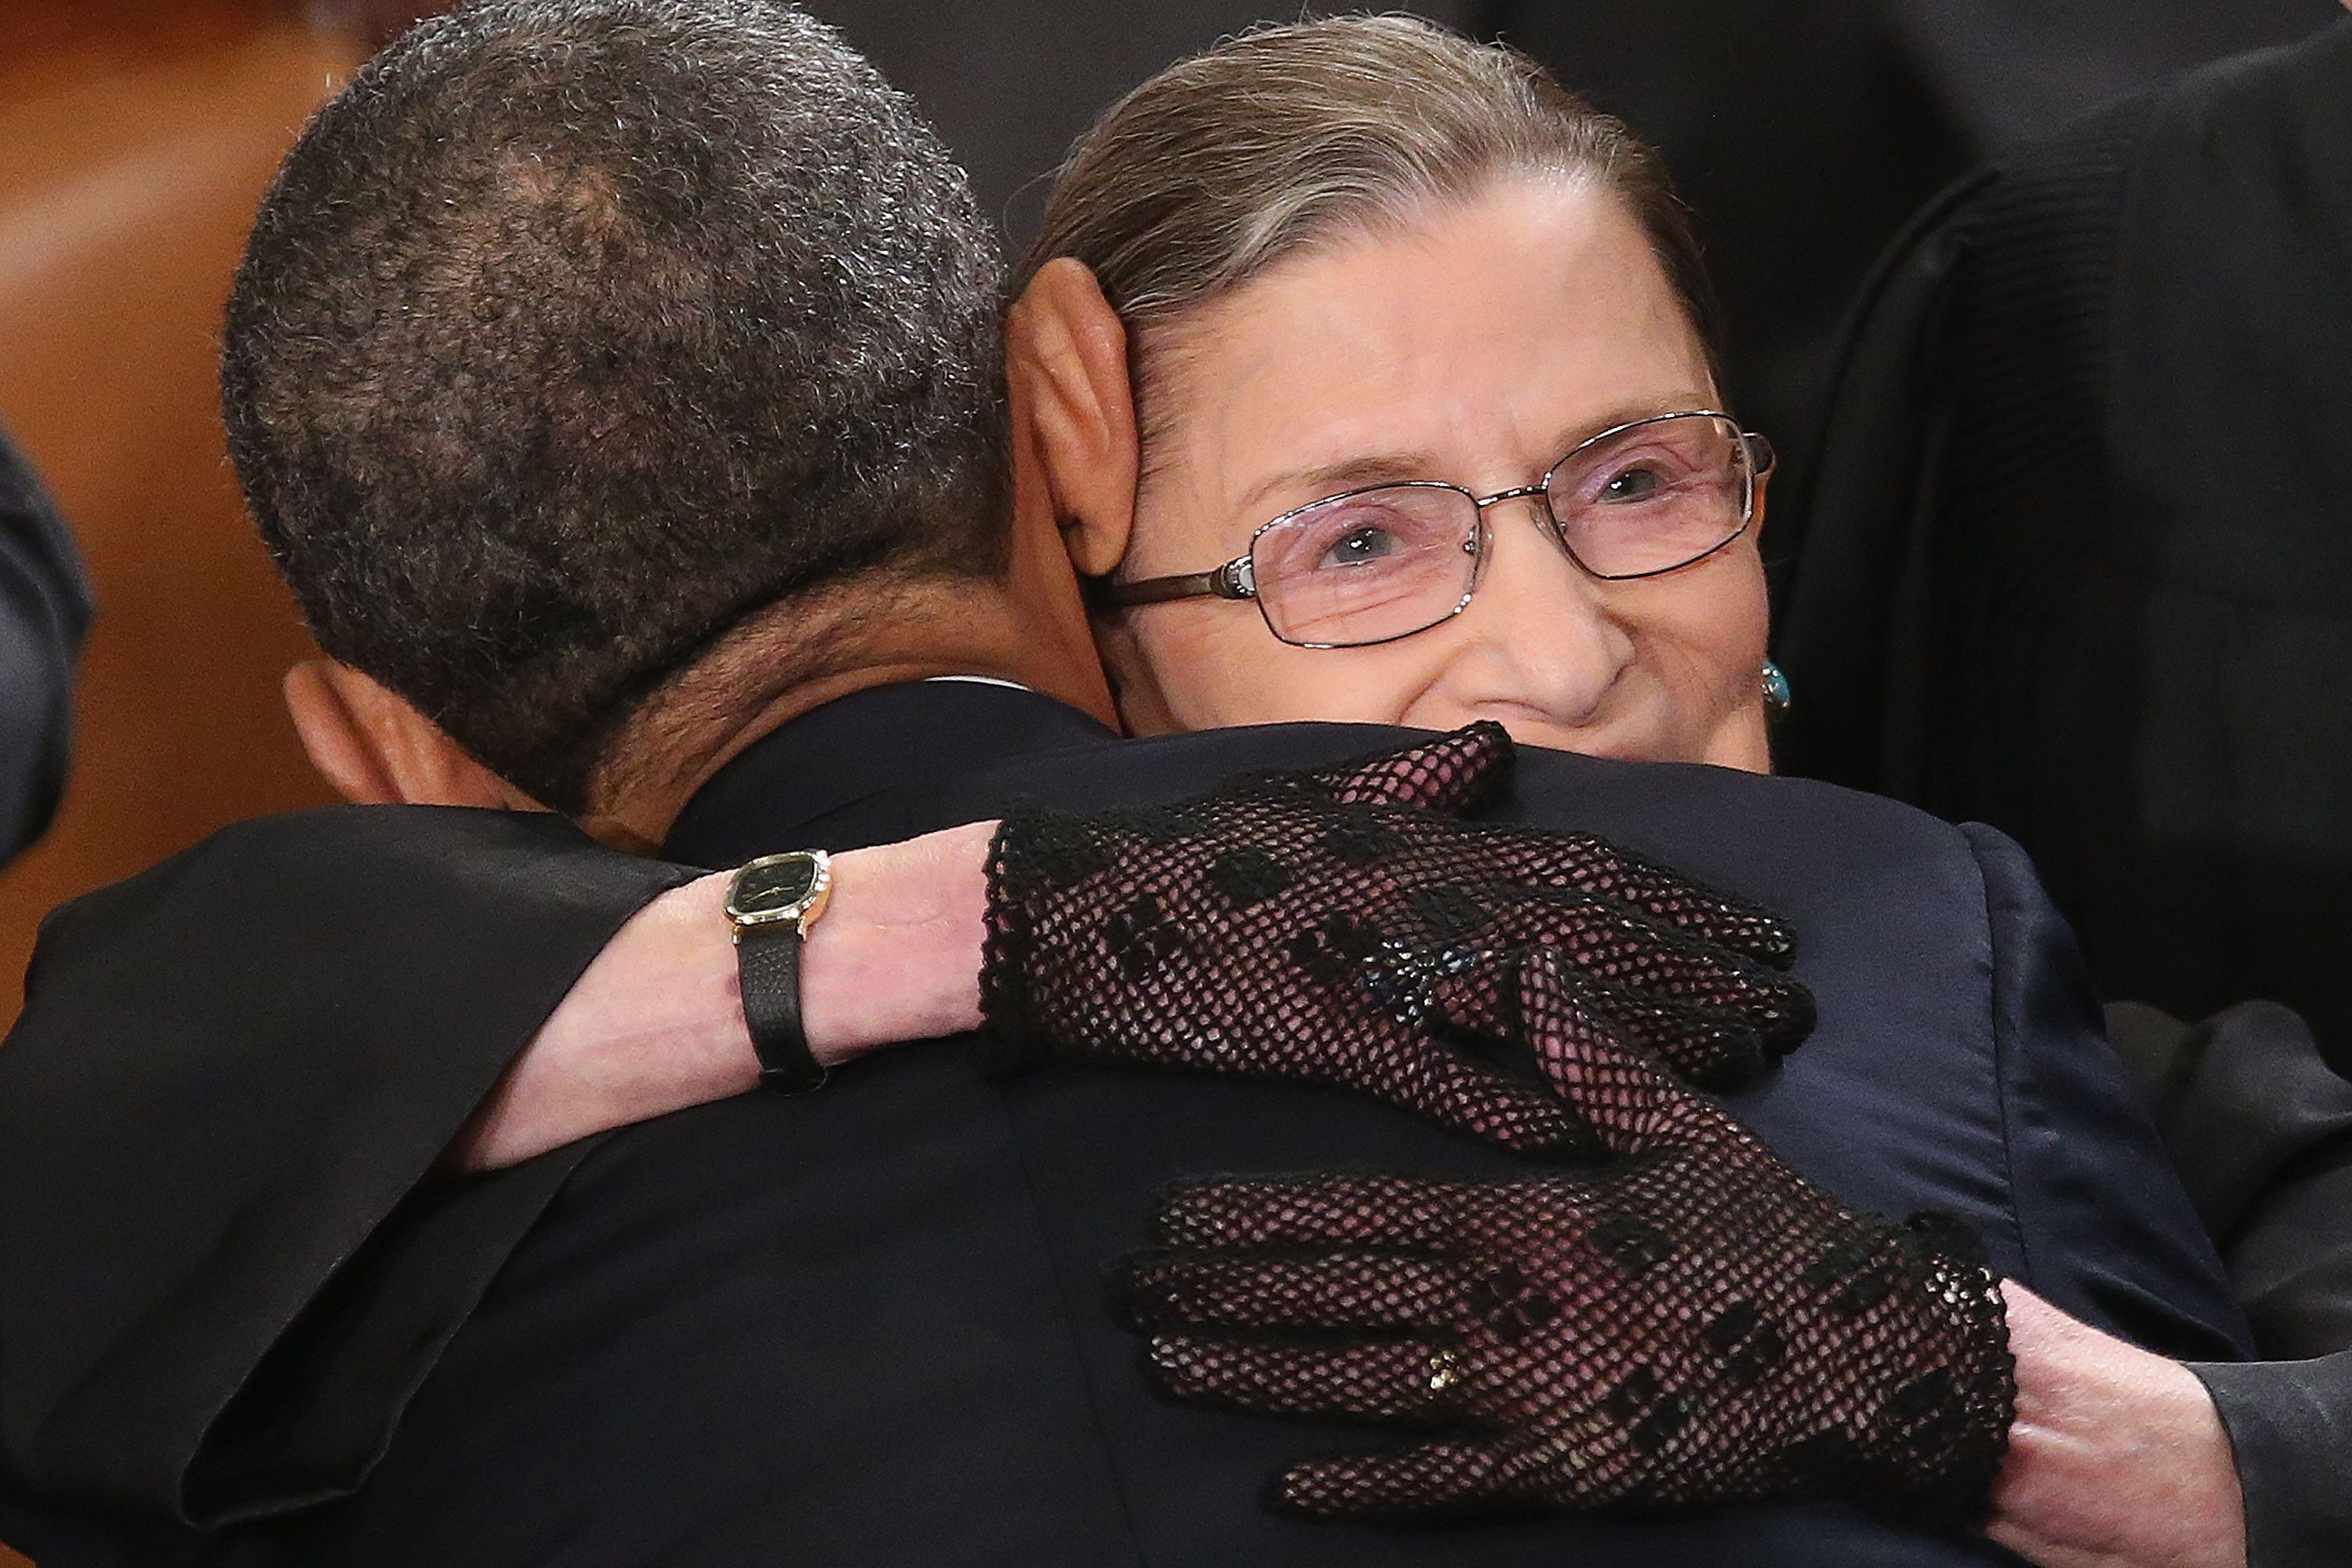 'Ruth Bader Ginsburg Fought to the End': Barack Obama Wrote a Touching Tribute to RBG